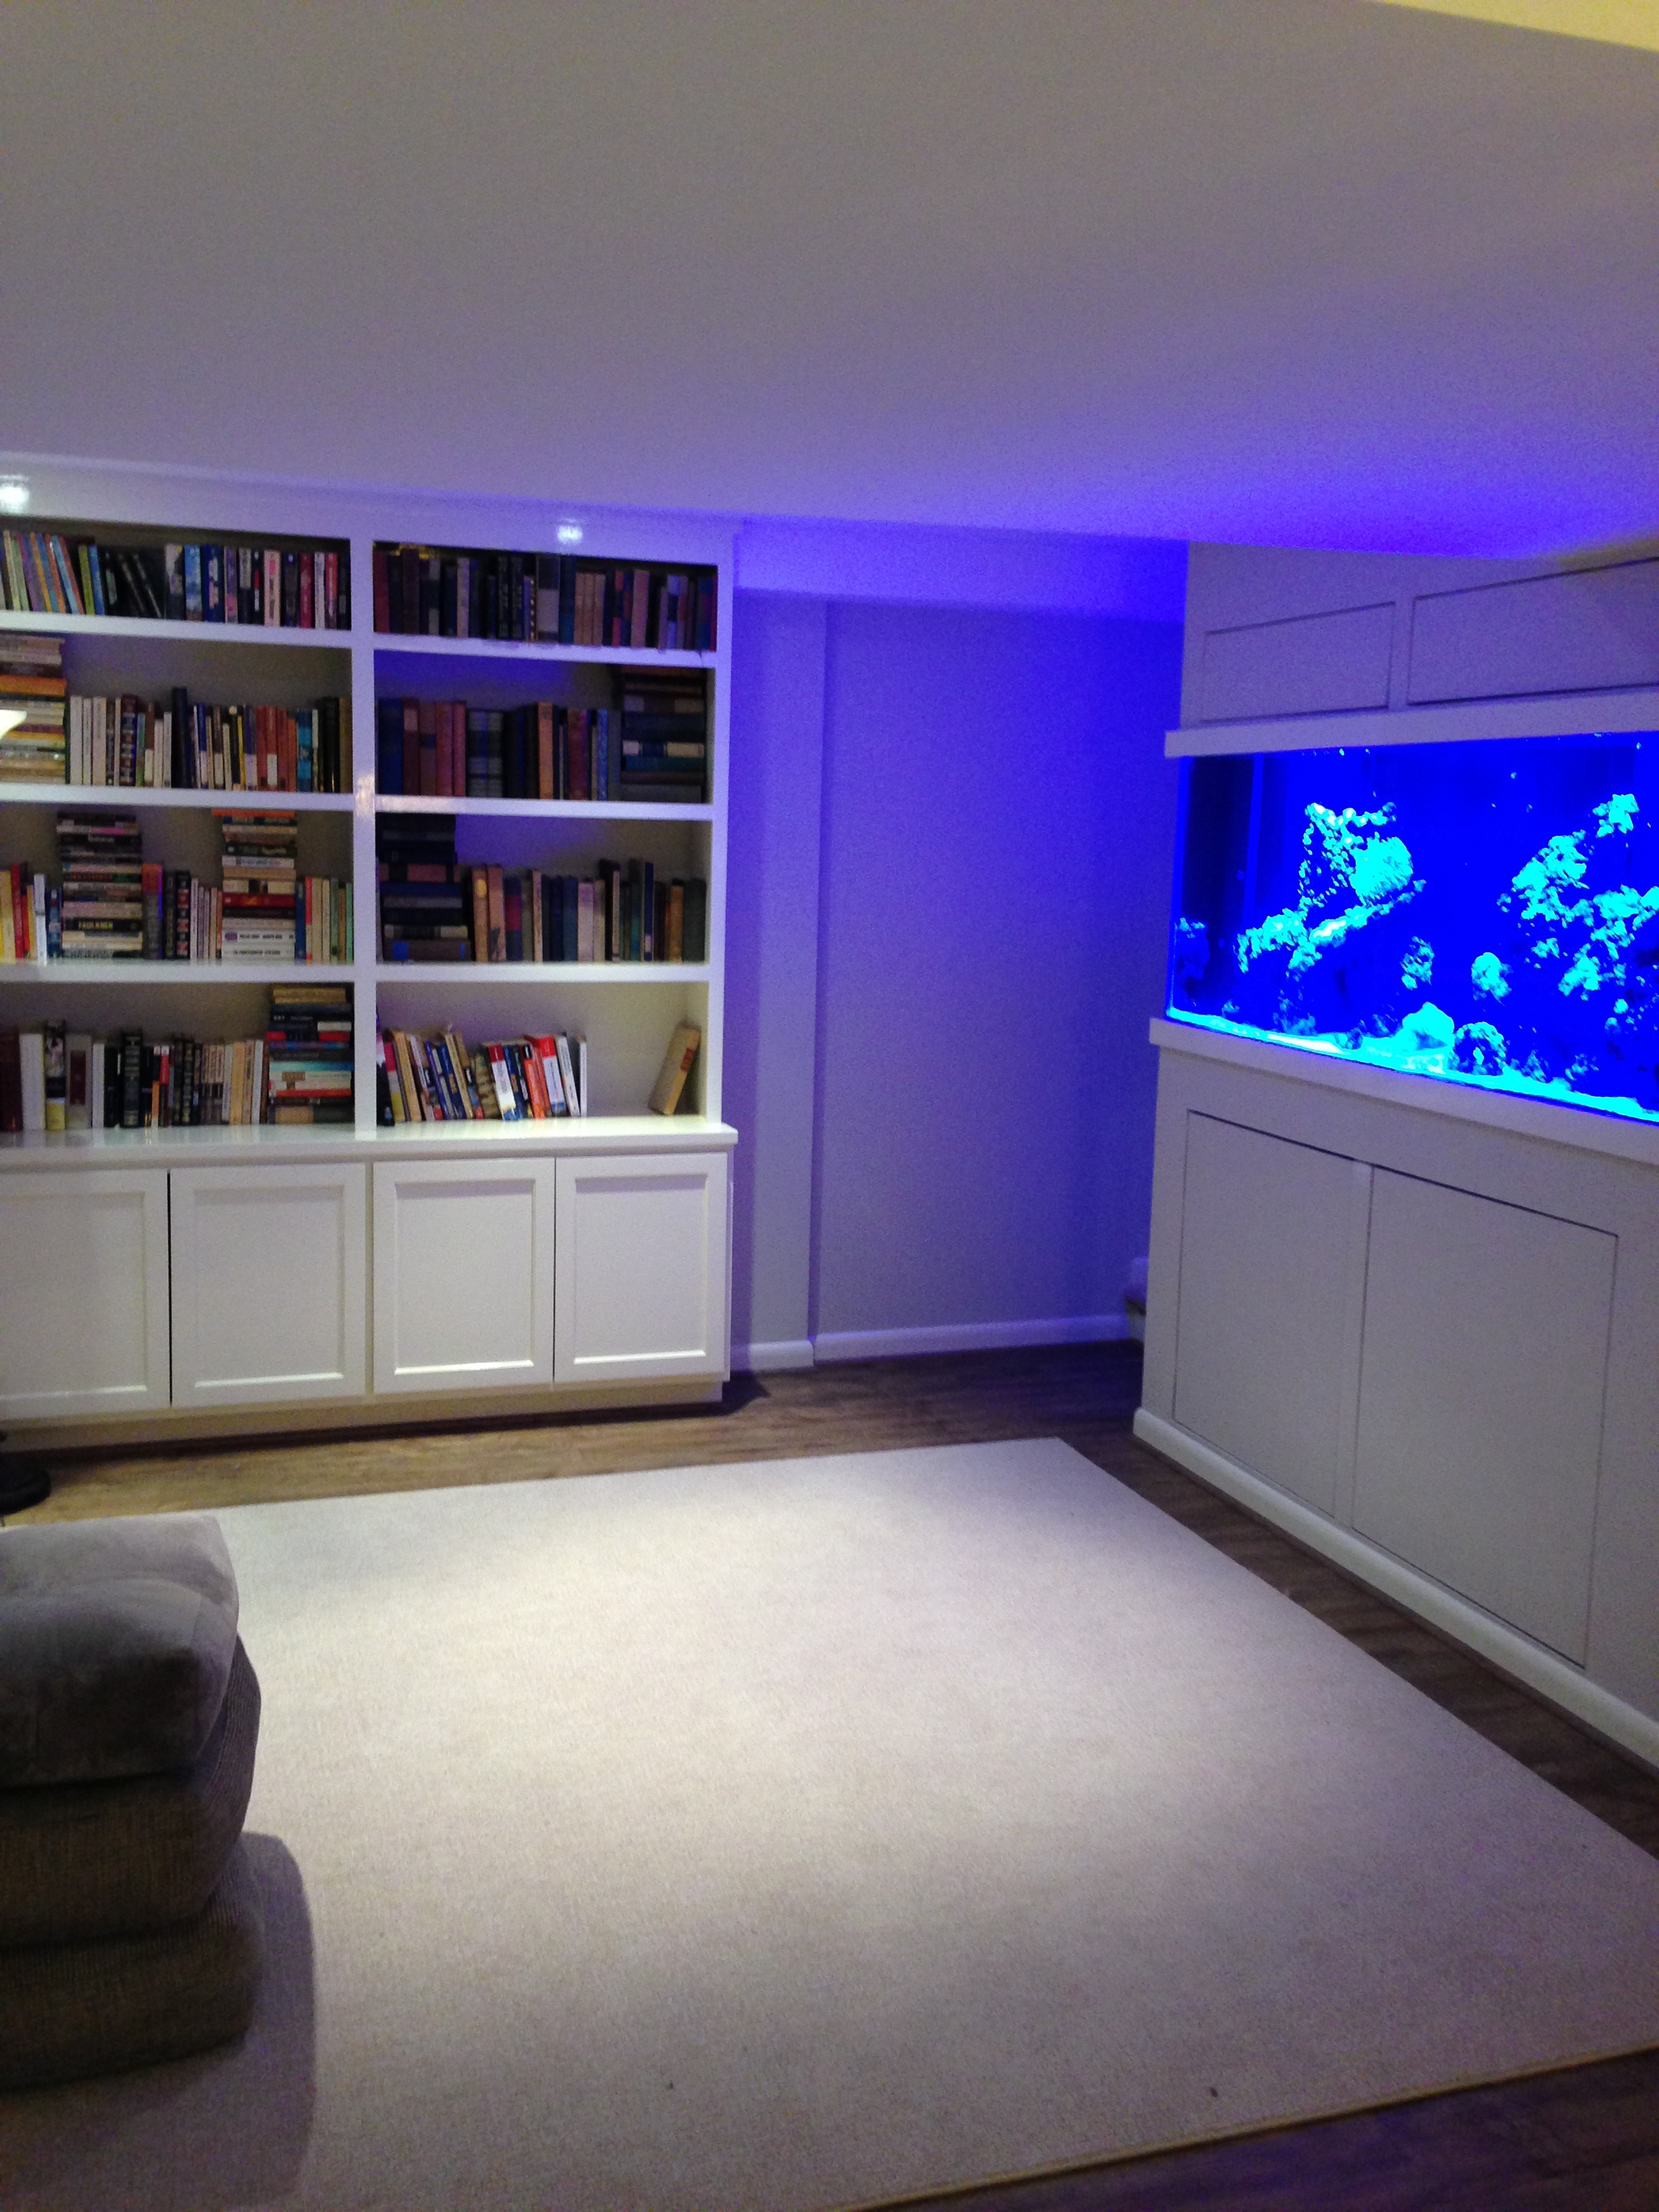 The completed aquarium wall